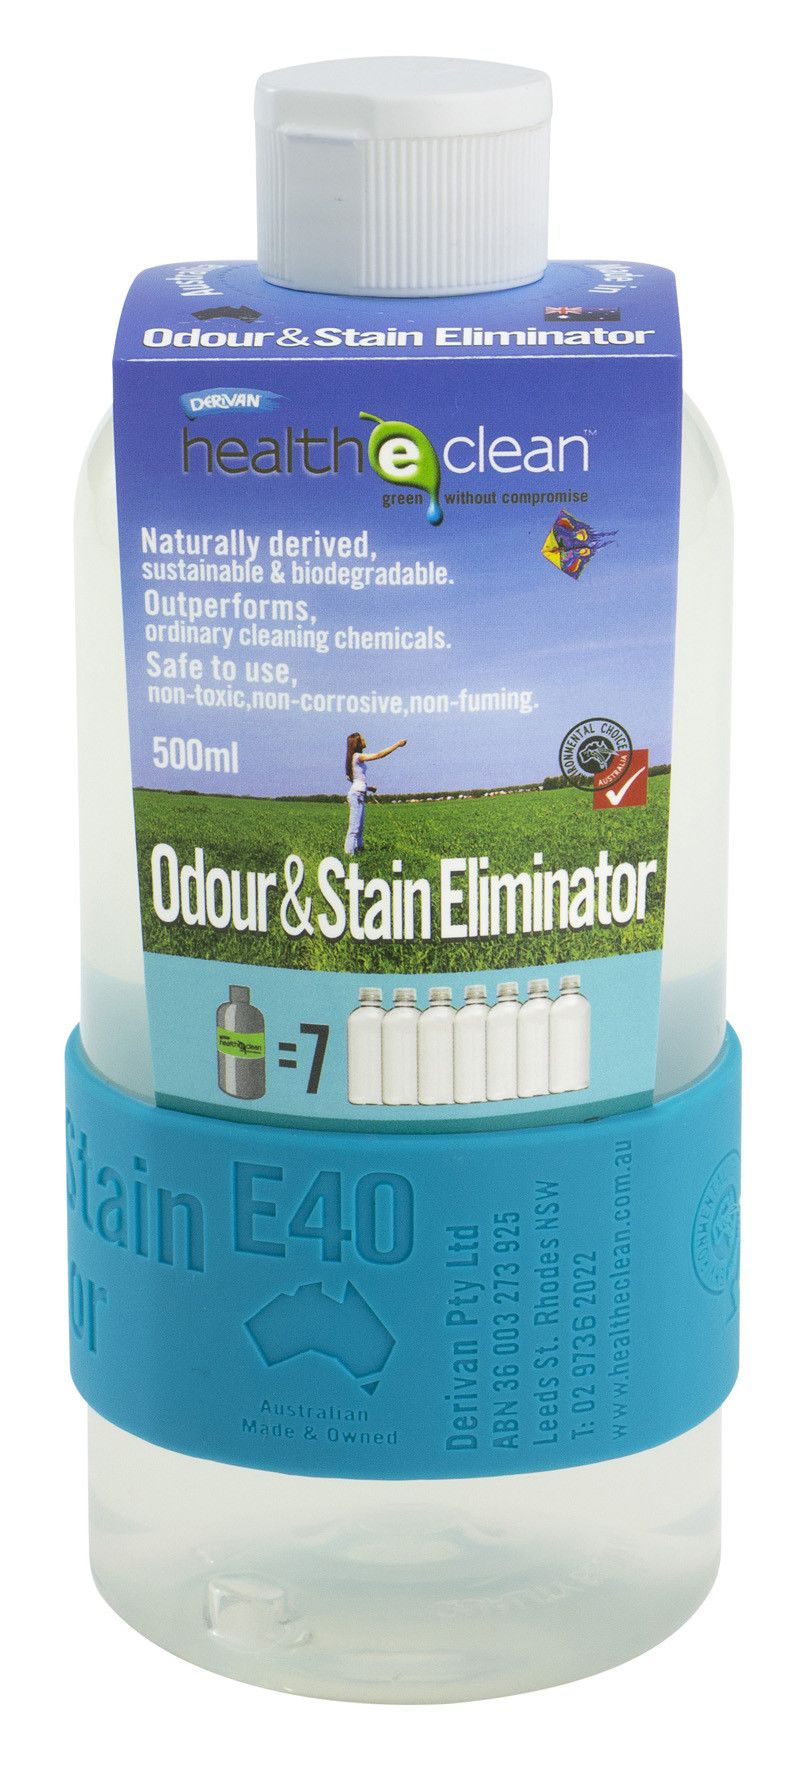 E40 ODOUR AND STAIN ELIMINATOR